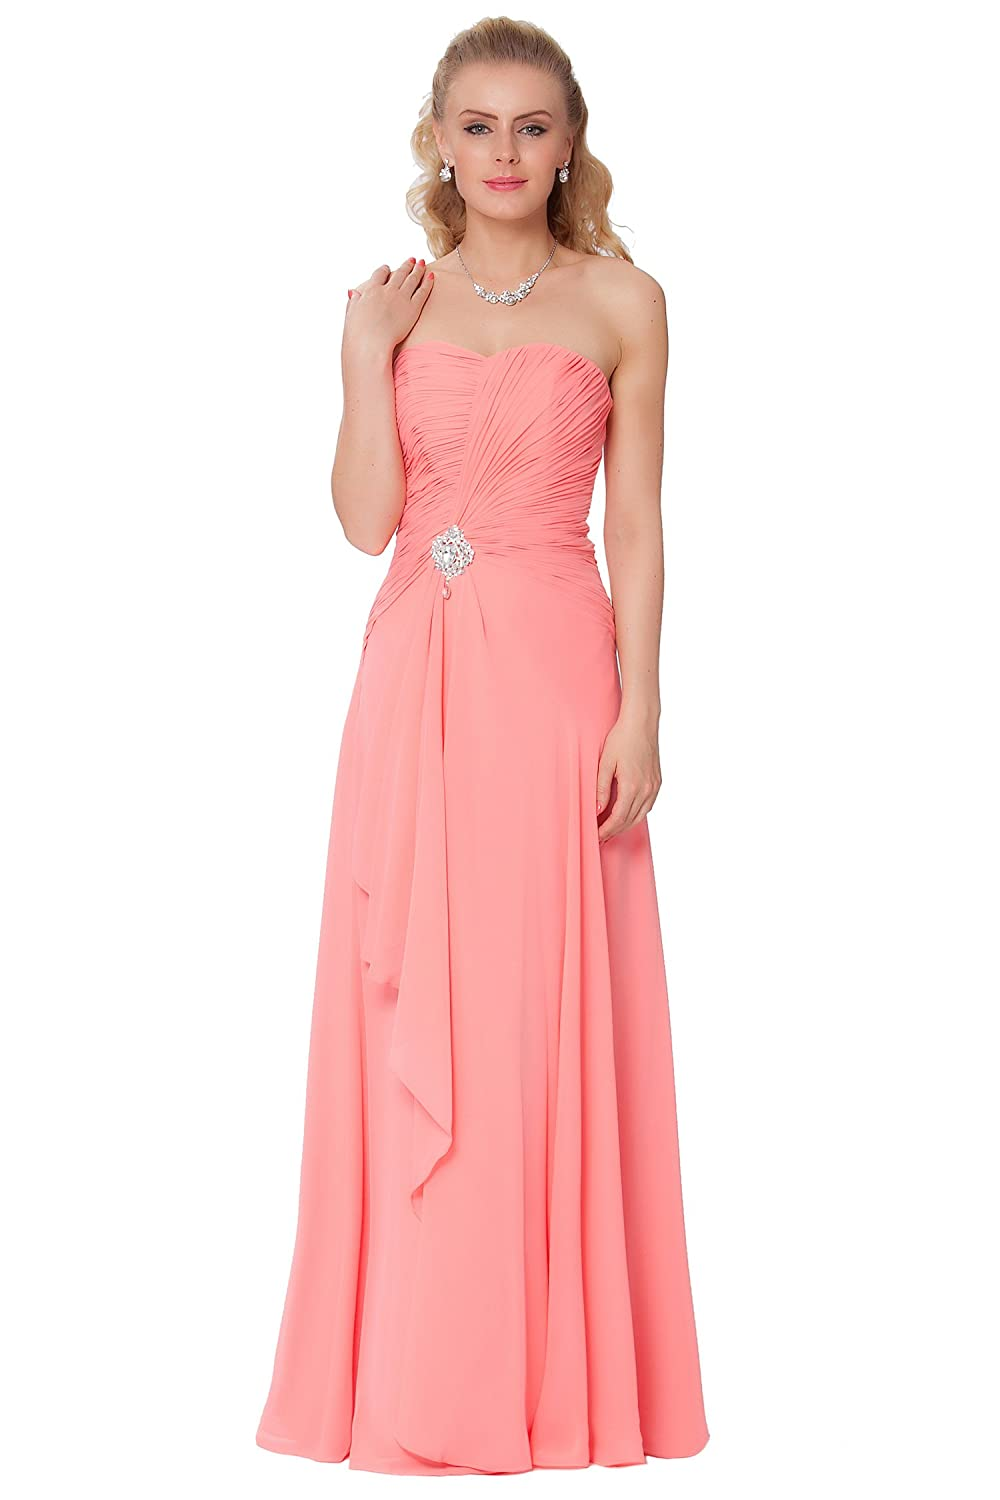 SEXYHER Gorgeous Full Length Strapless Bridesmaids Formal Evening Dress - EDJ1592